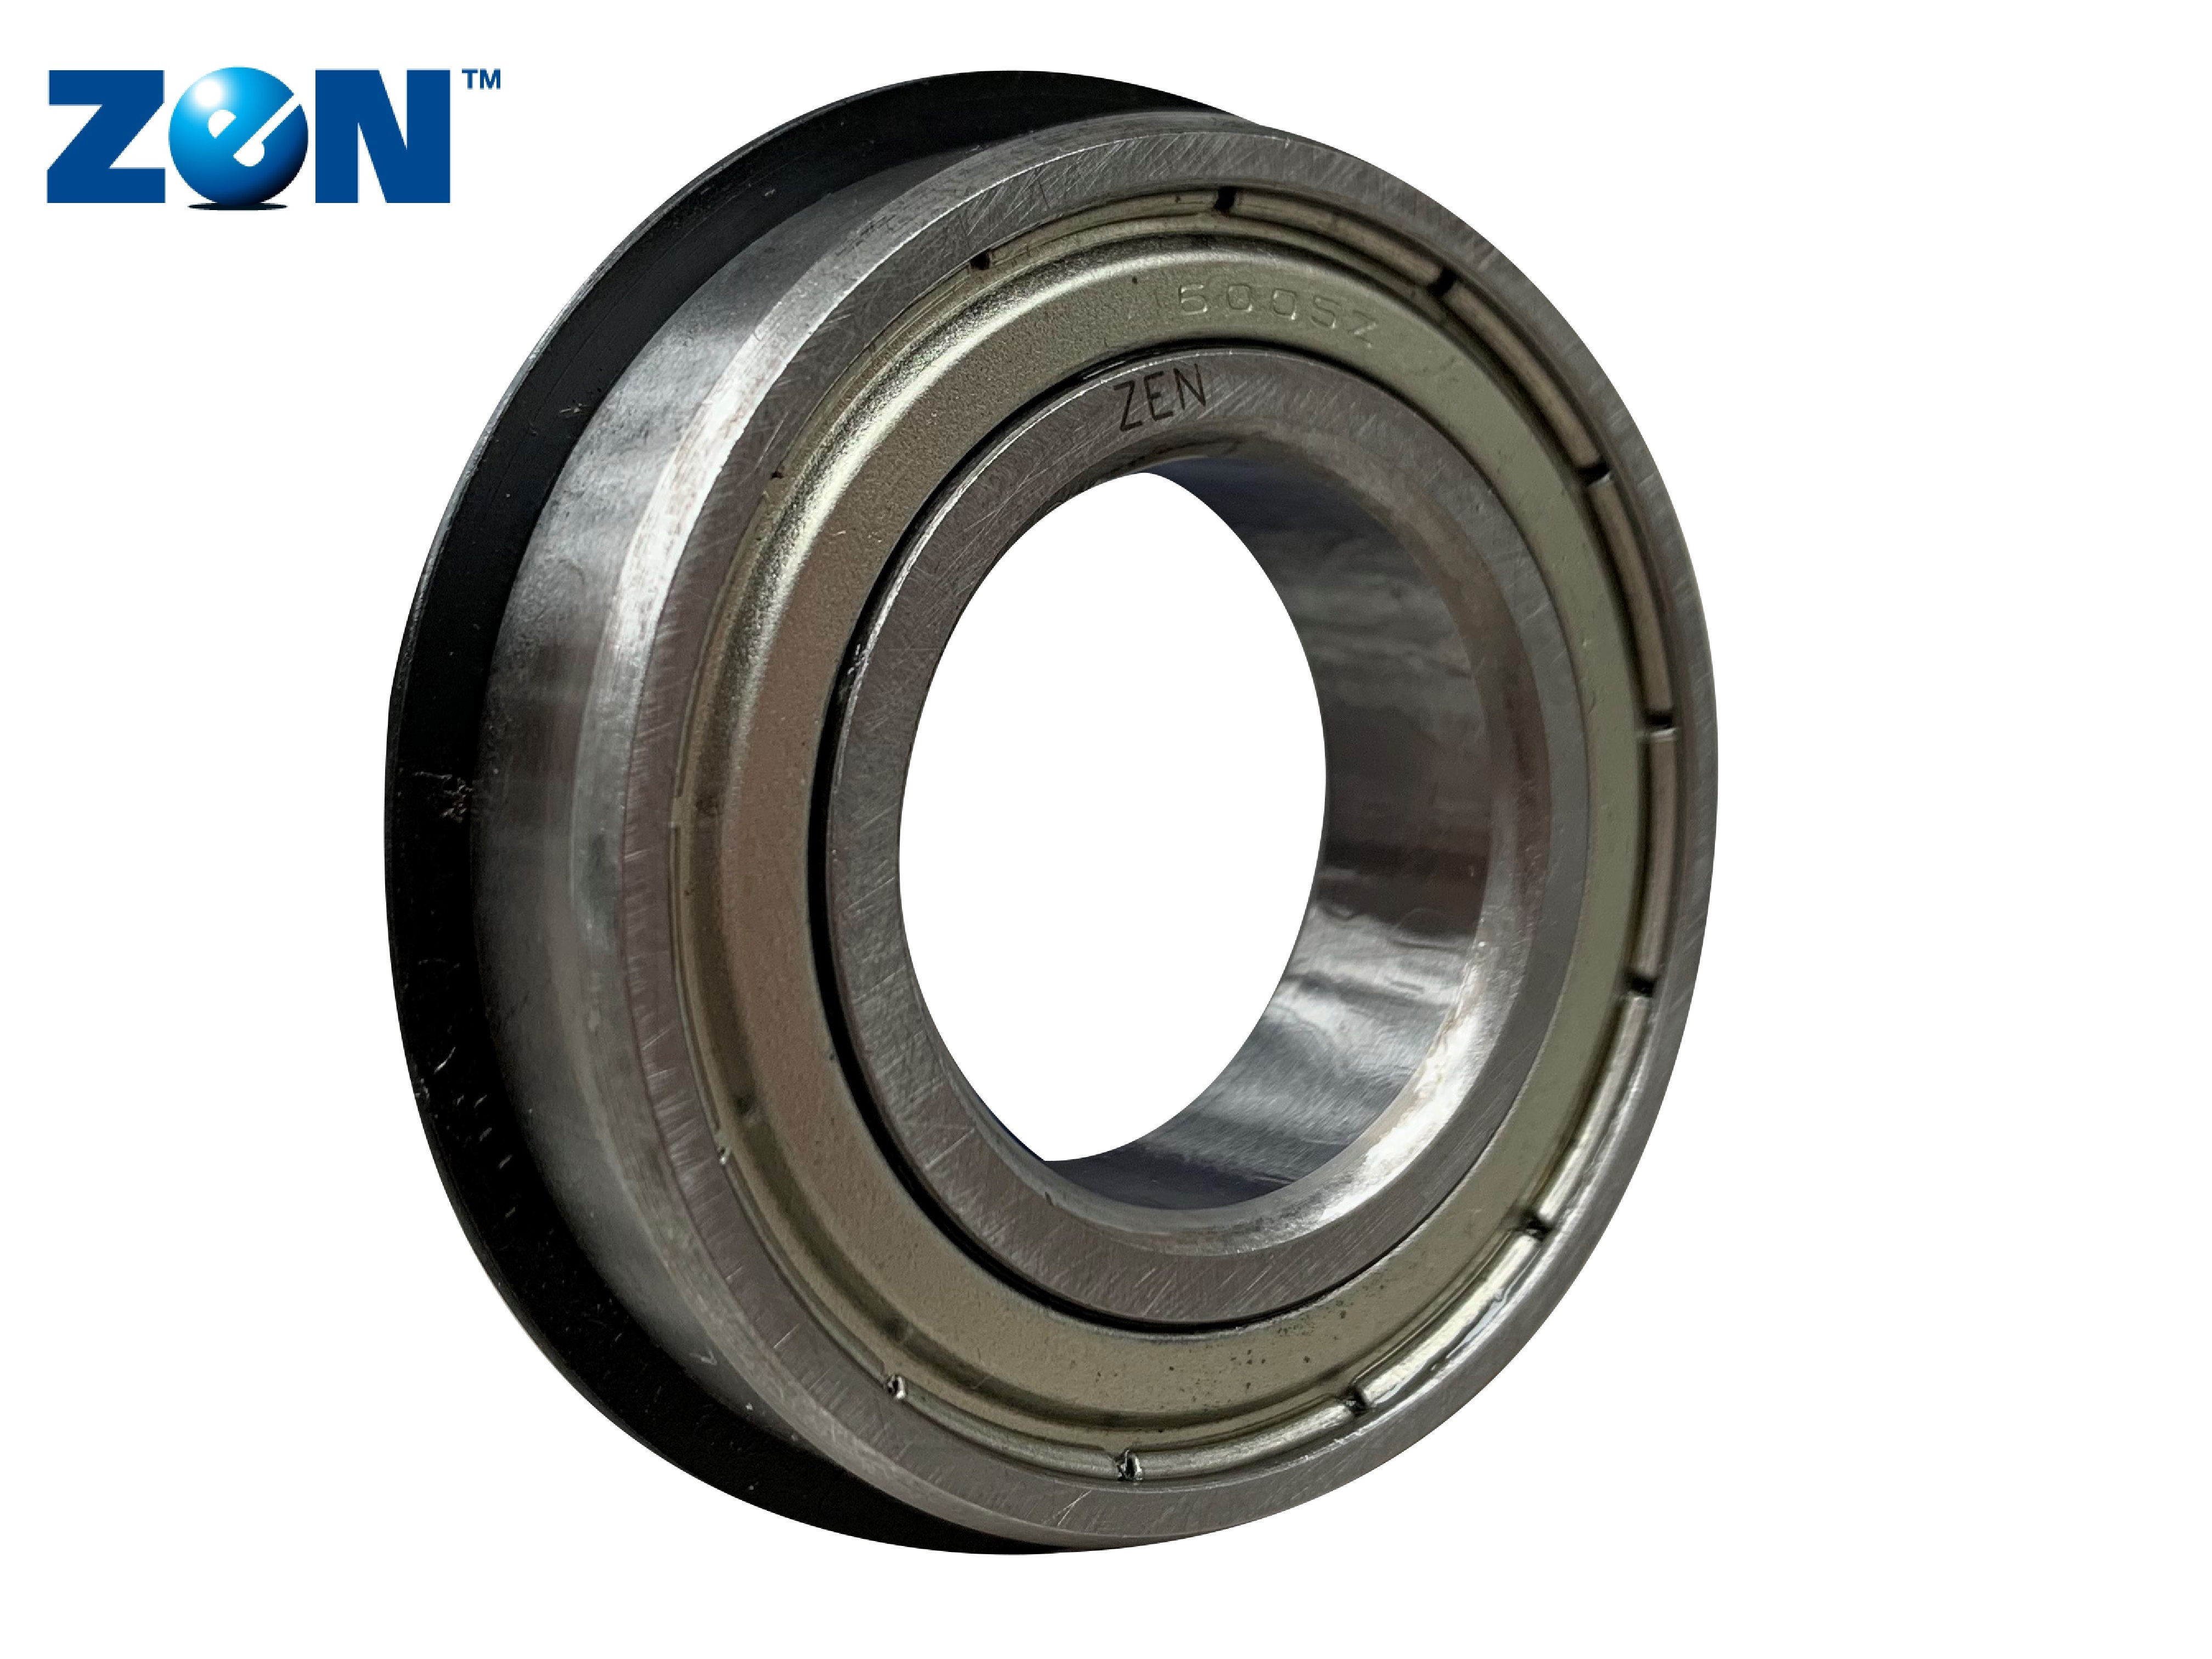 ZEN 6000-2Z-NR Shielded Ball Bearing With Snap Ring 10mm x 26mm x 8mm